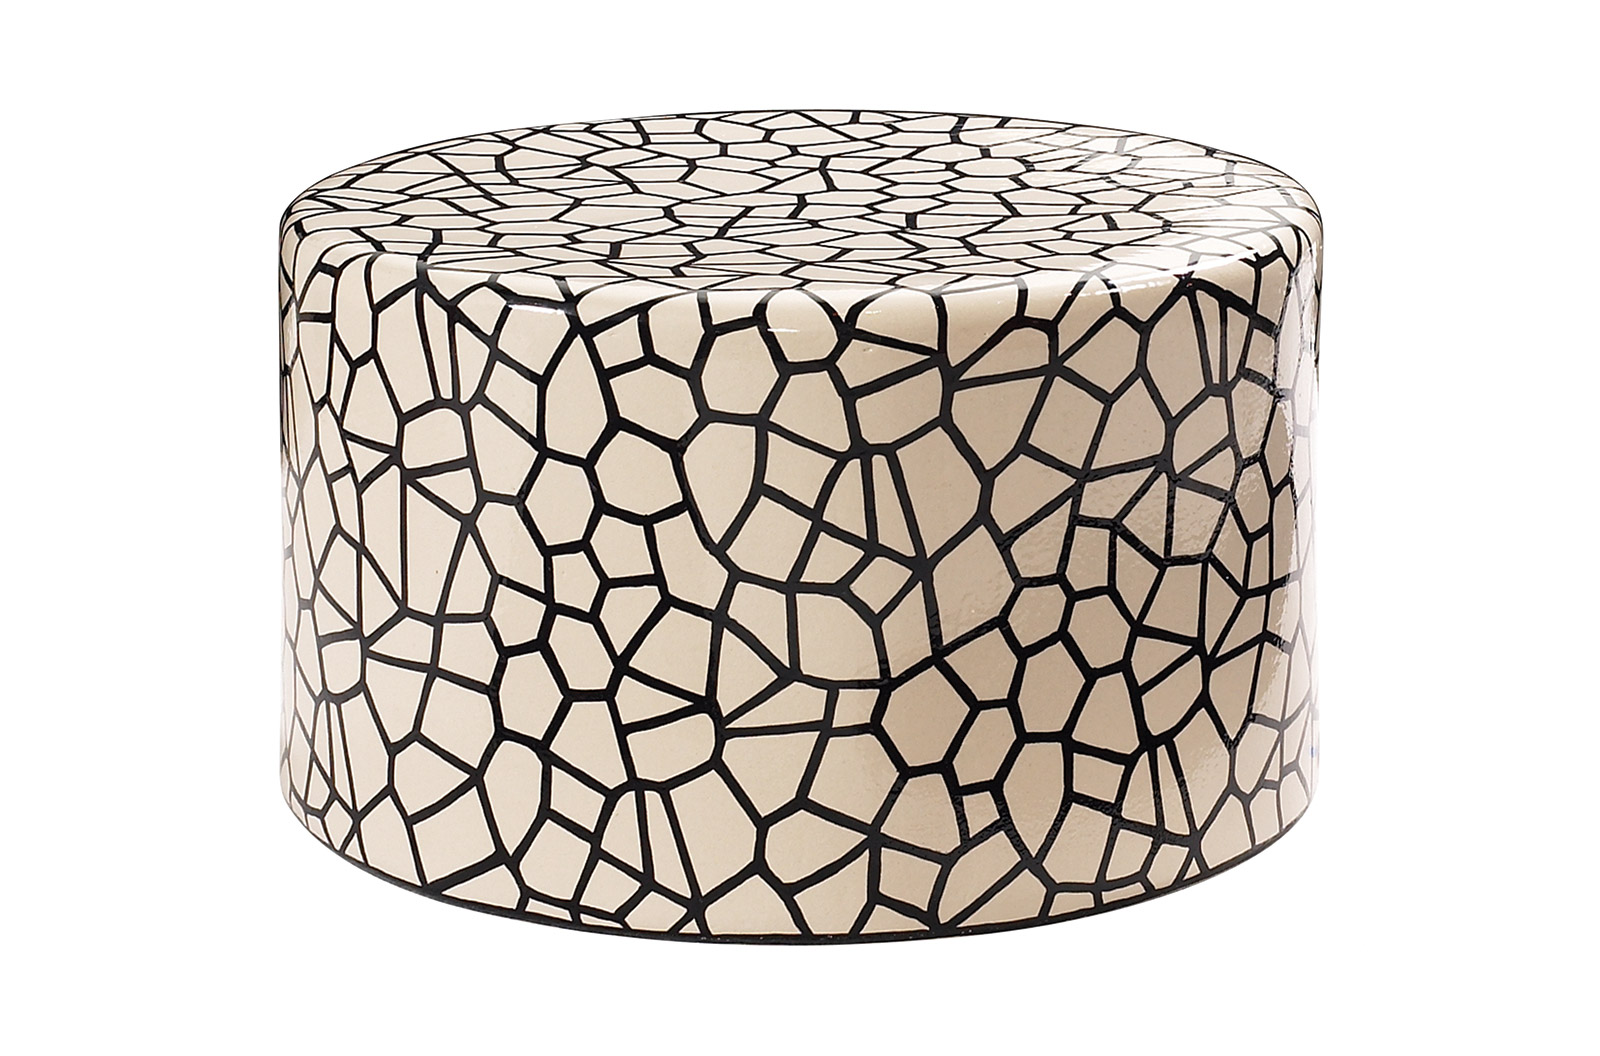 Incroyable Ceramic Artisan Series Baby Caroness Accent Table